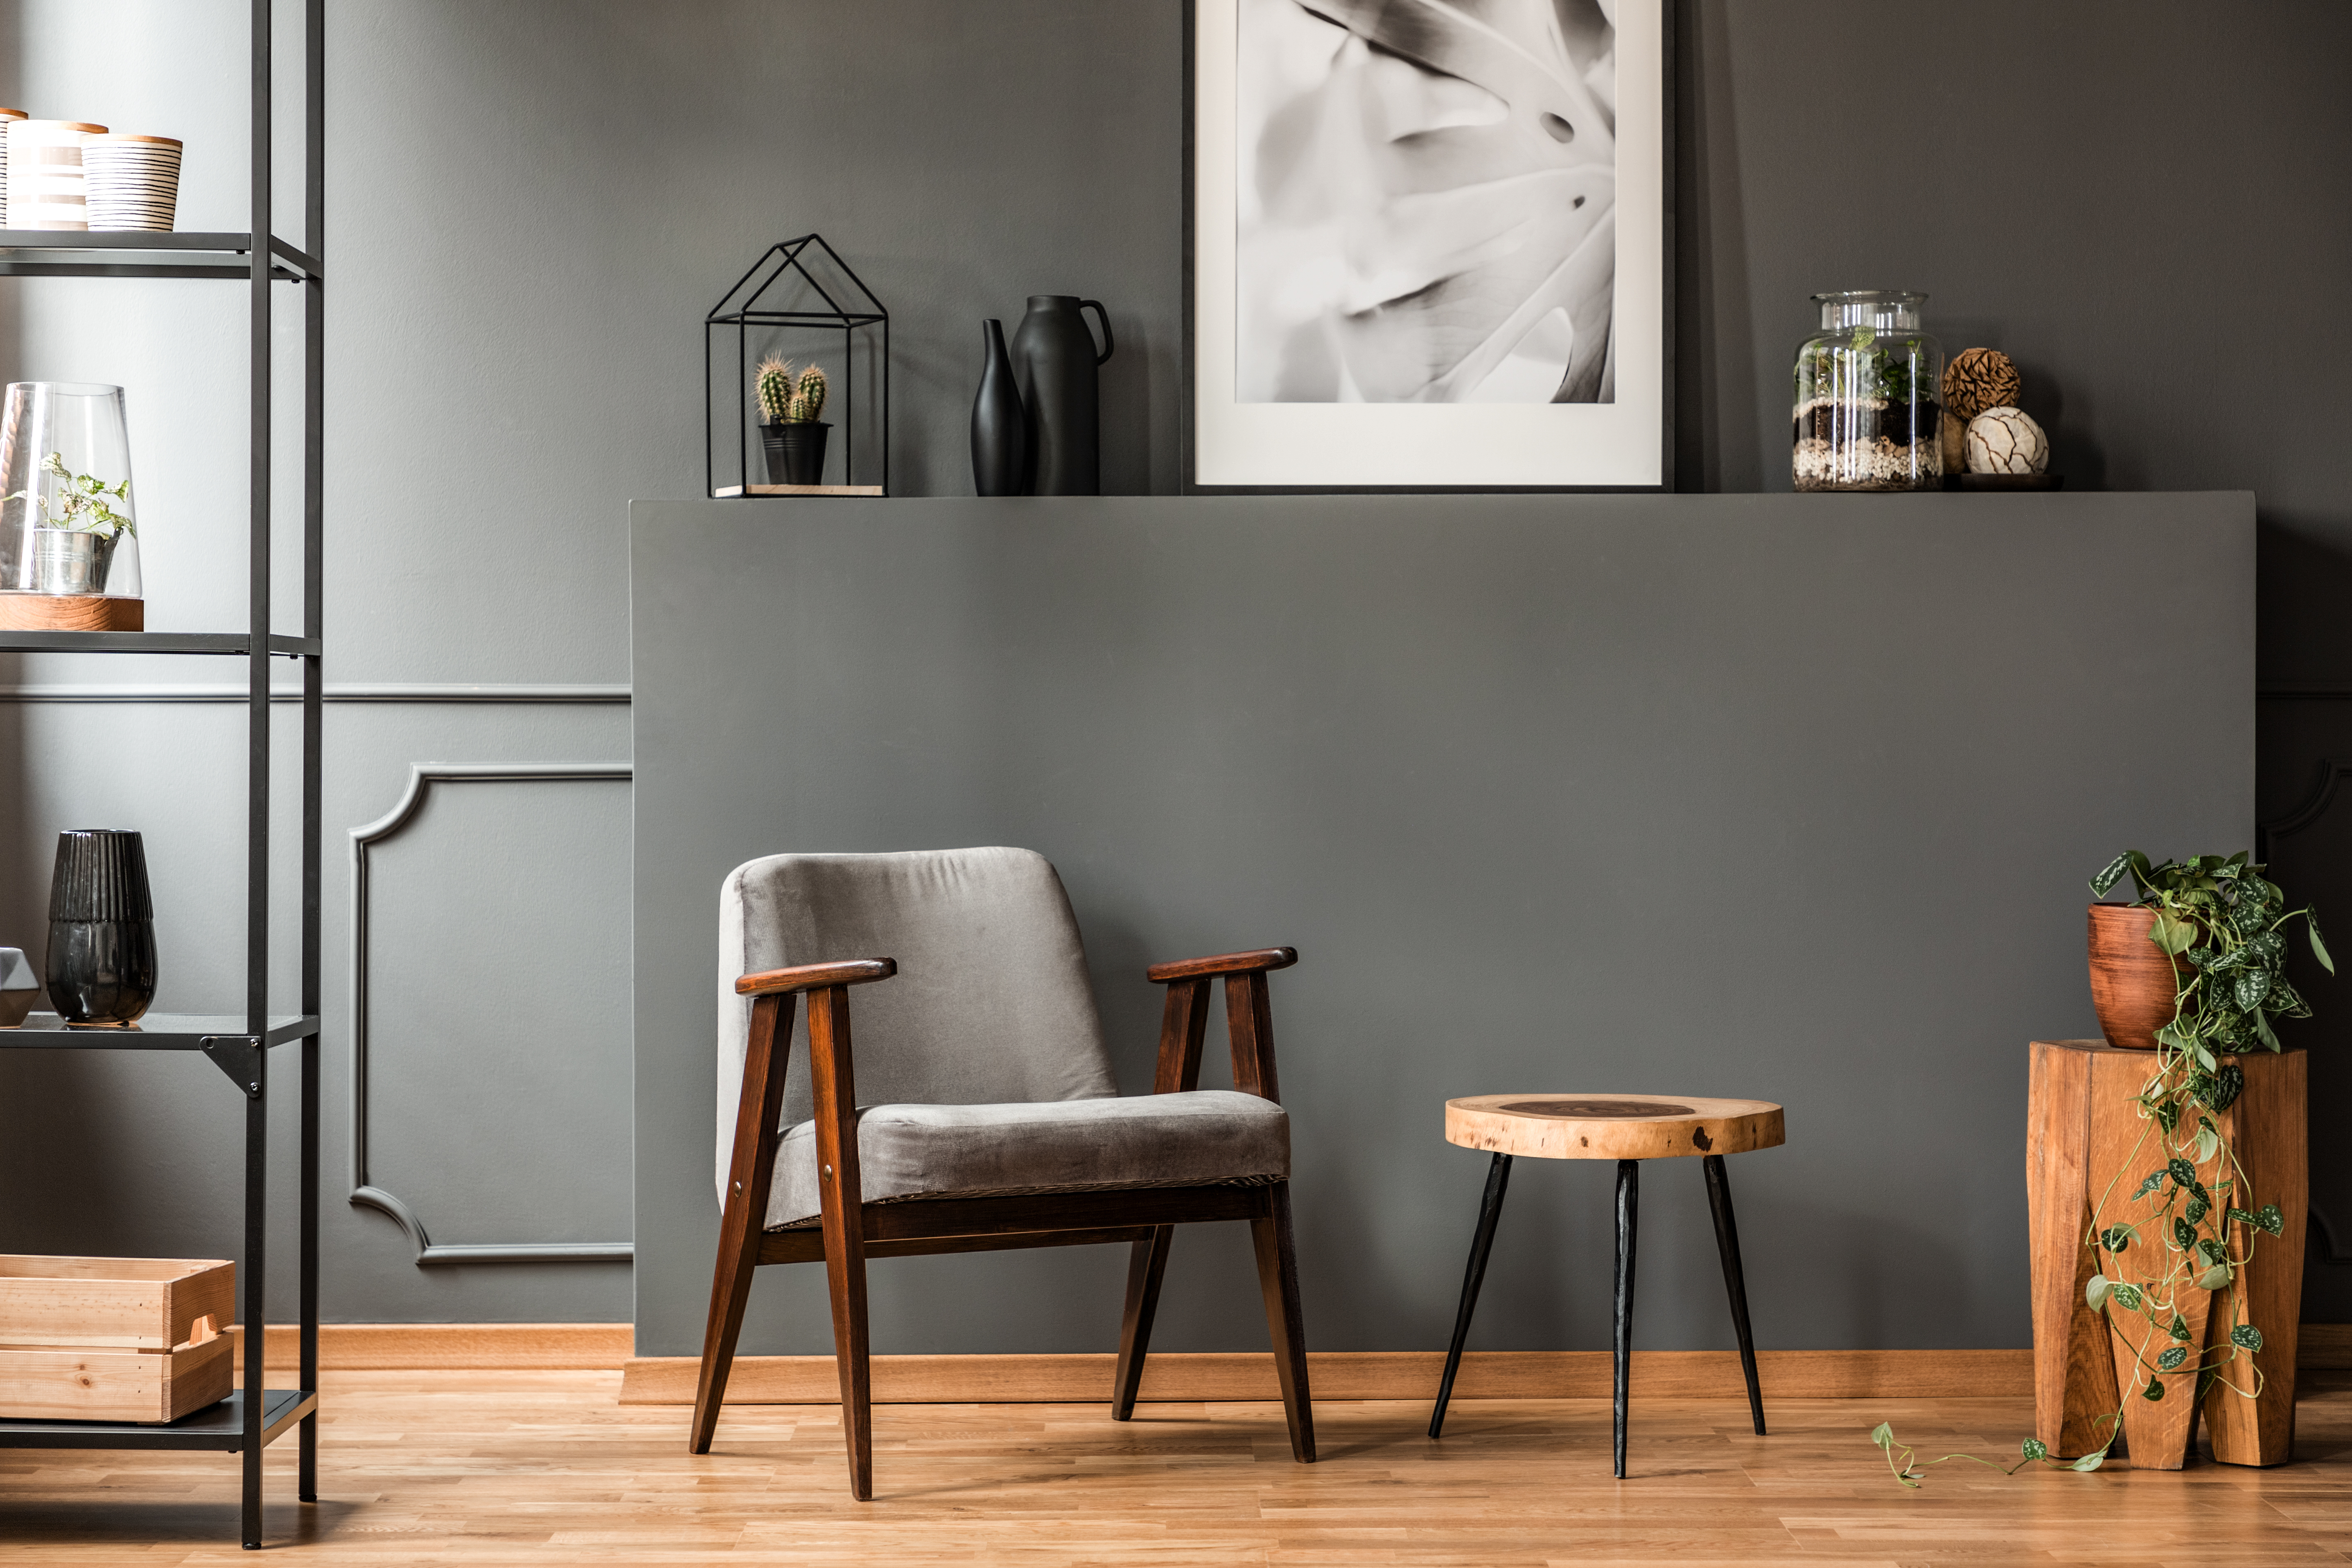 Decorating Trends On The Way Out 2020.Decorating Trends Real Estate Agents Say You Should Avoid In